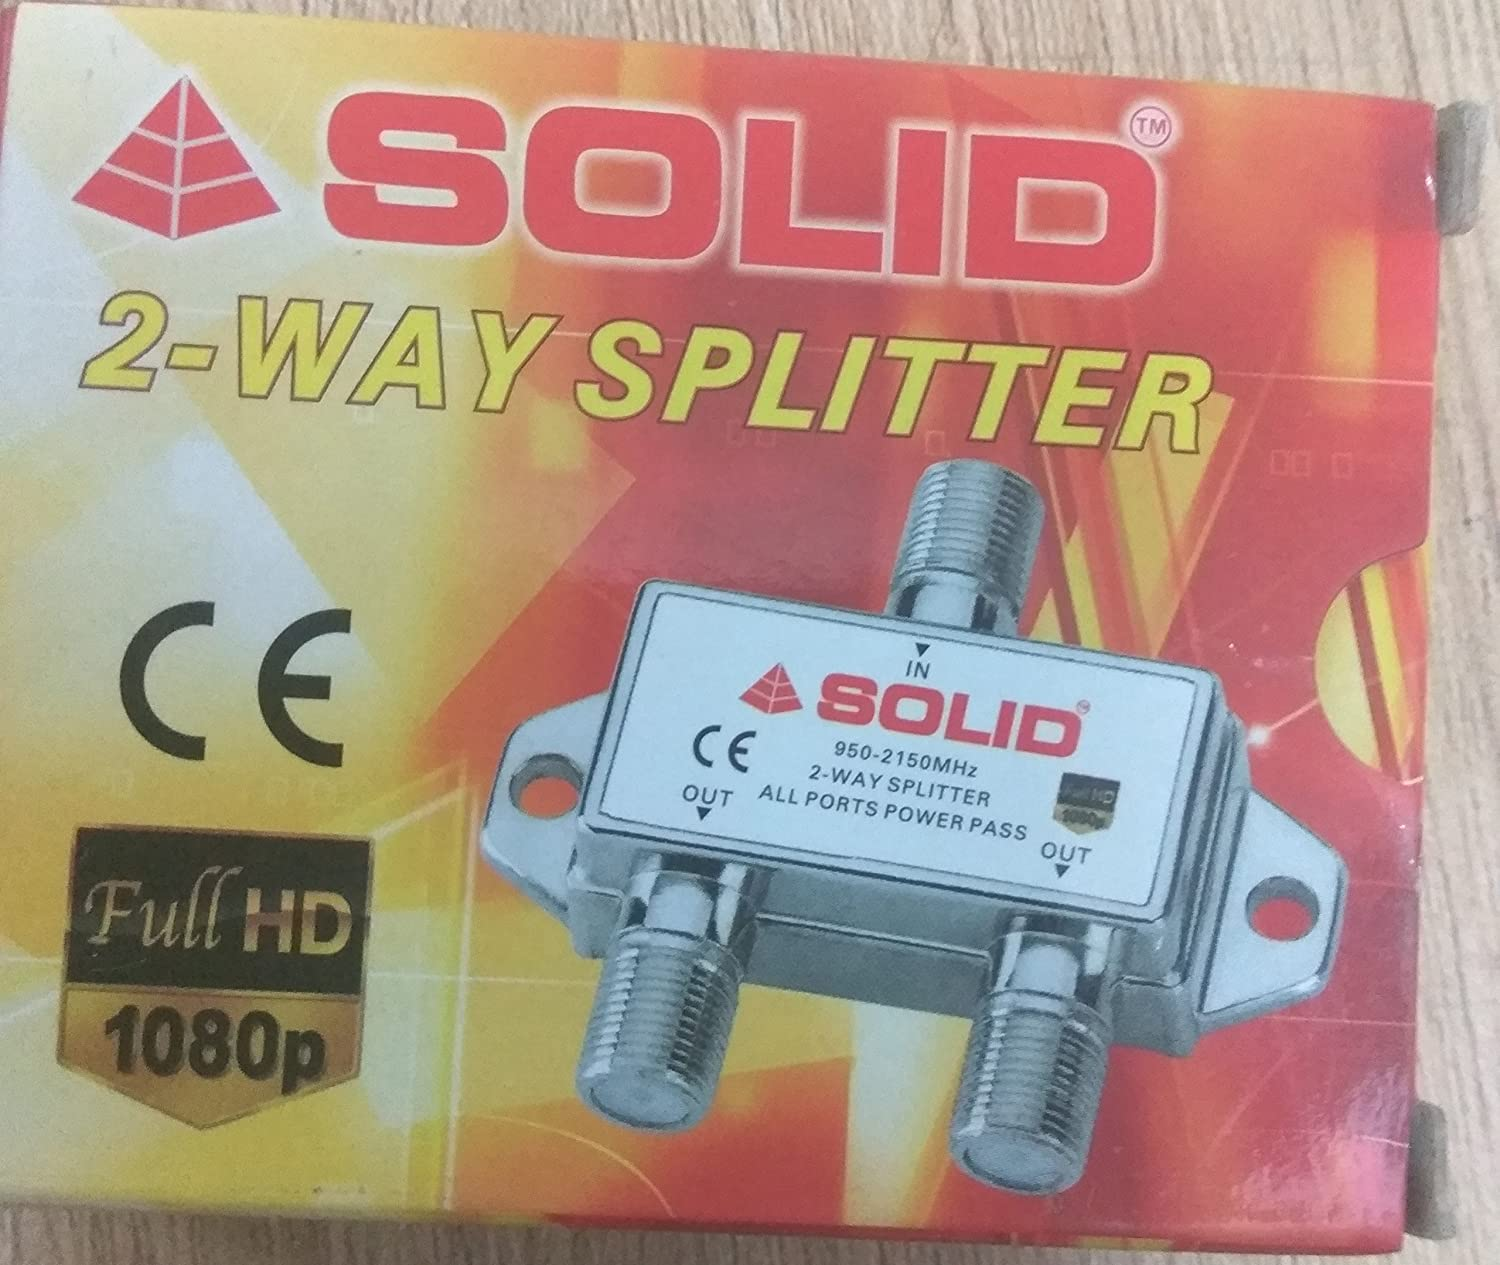 Solid Nws 2 Way Splitter 950 2150 Mhz Full Hd 1080p Twoway Multiswitch Electronics